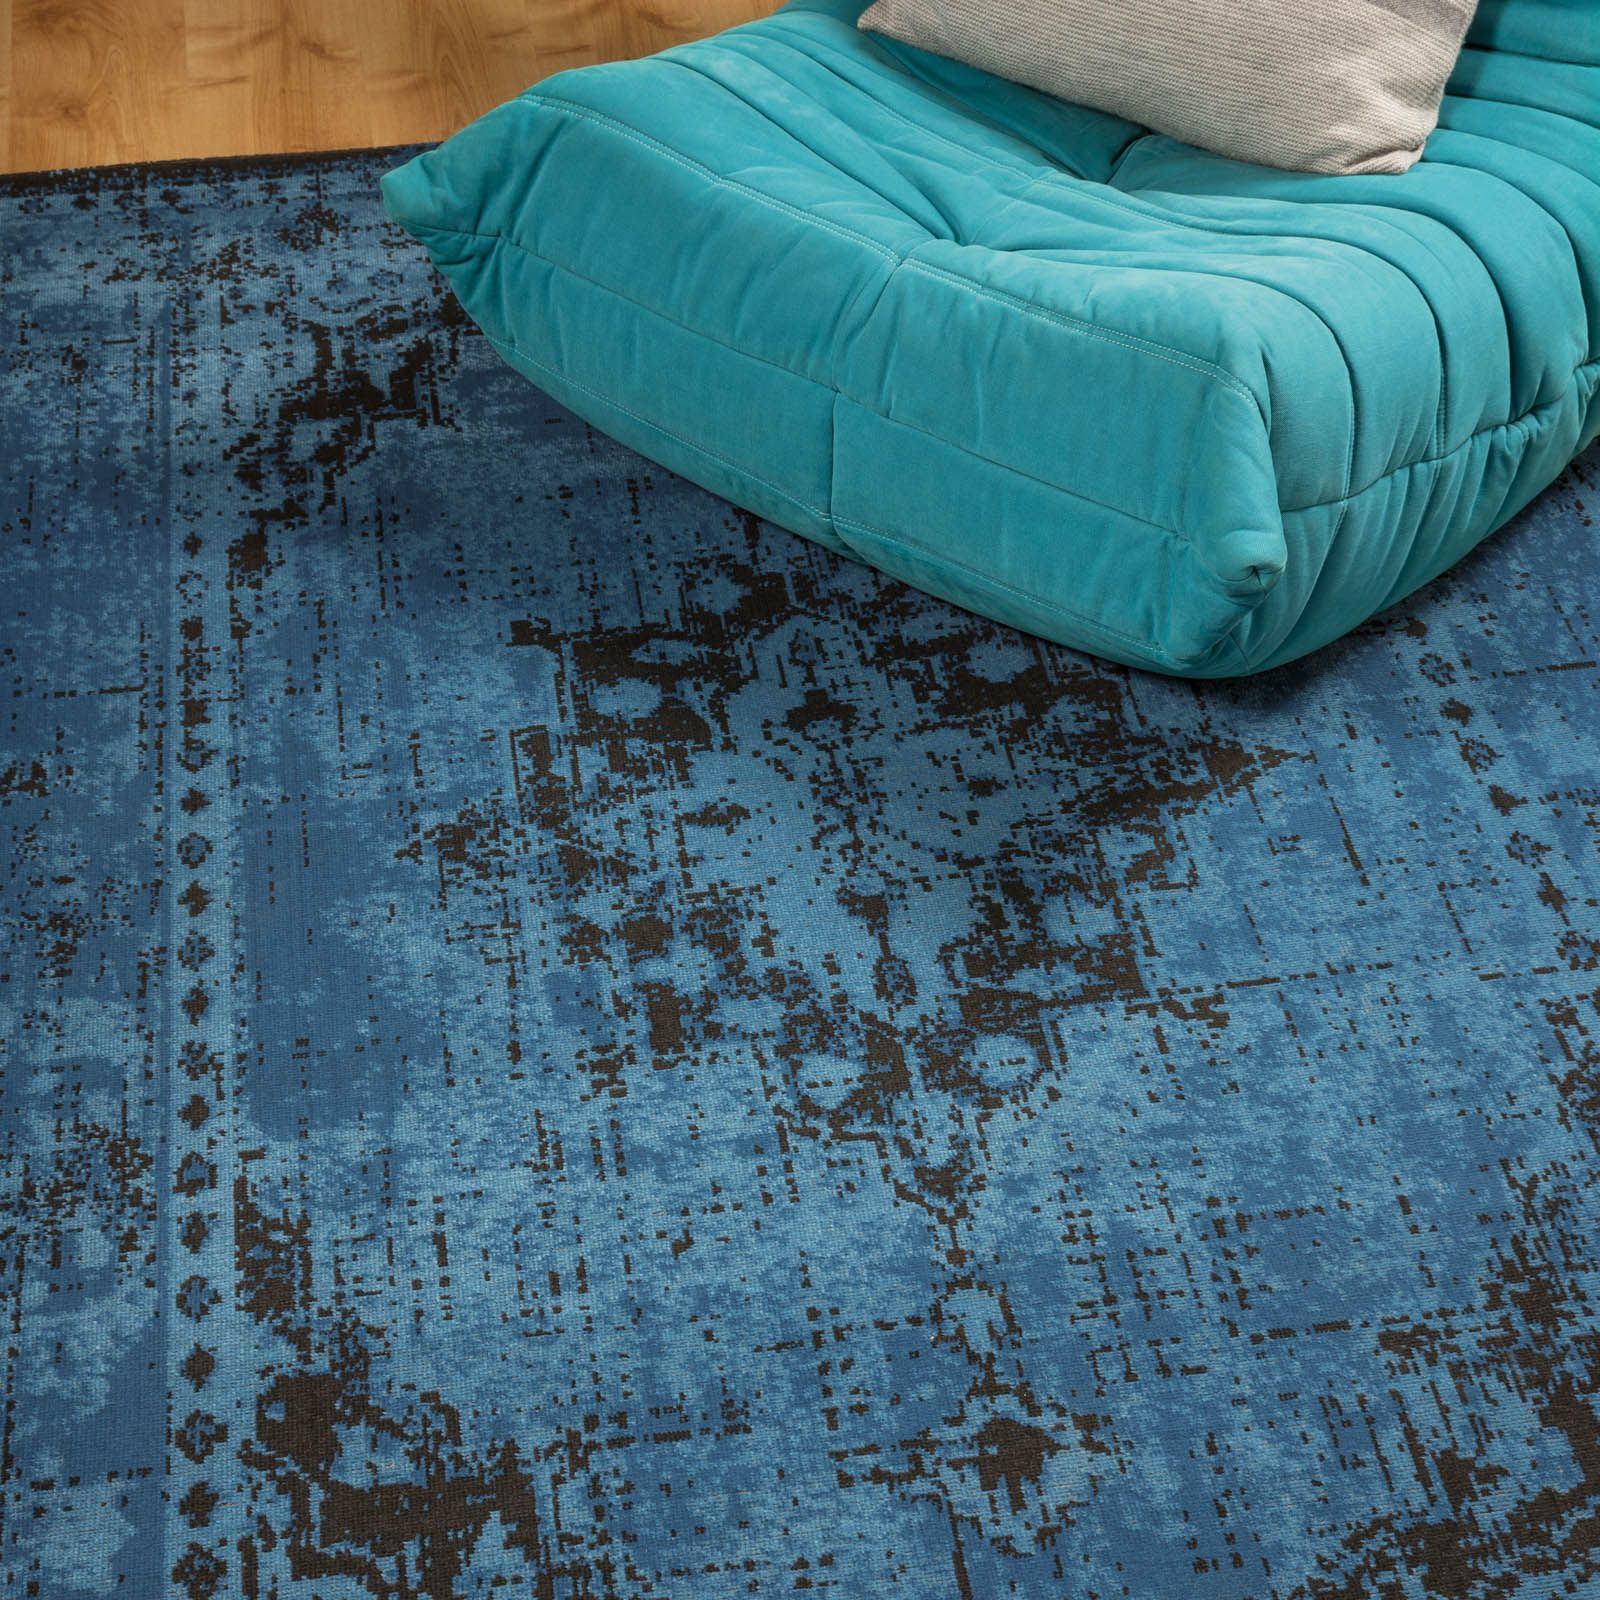 Revive Rugs Re04 In Blue120x170cm 5 7